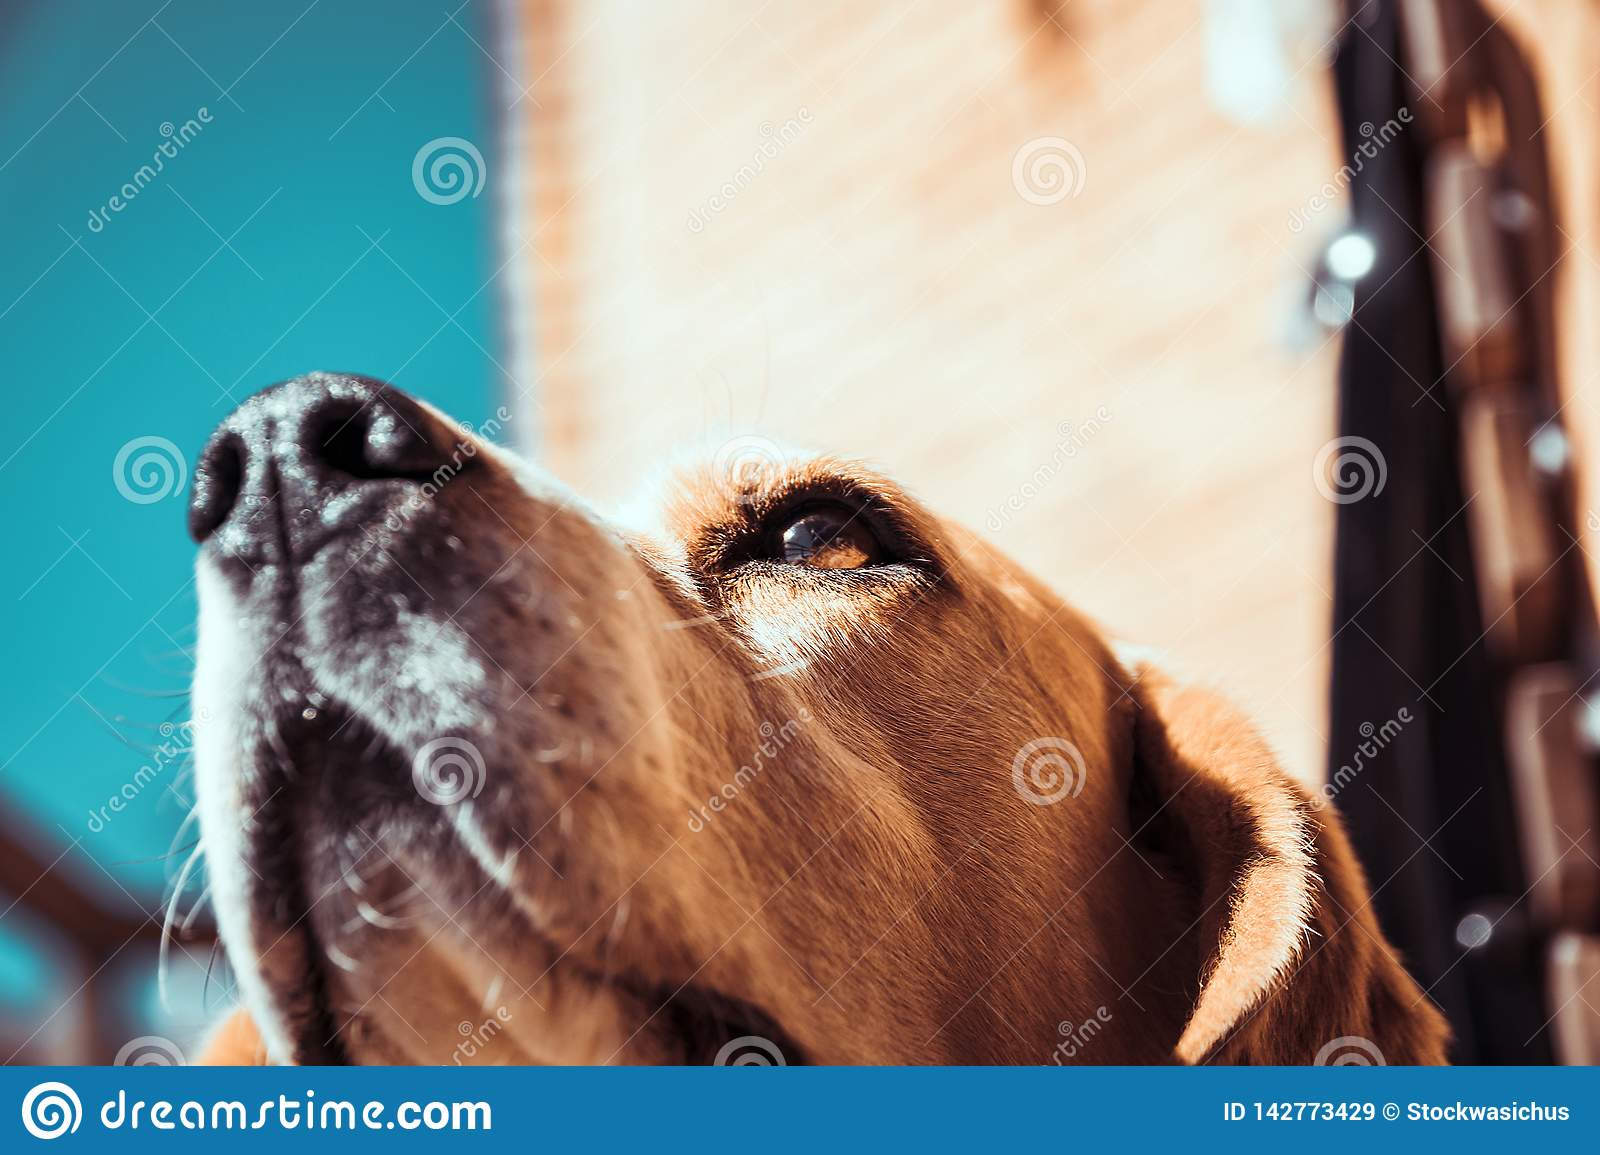 Beagle dog smelling or sniffing air with nose. Tracking beagle dog